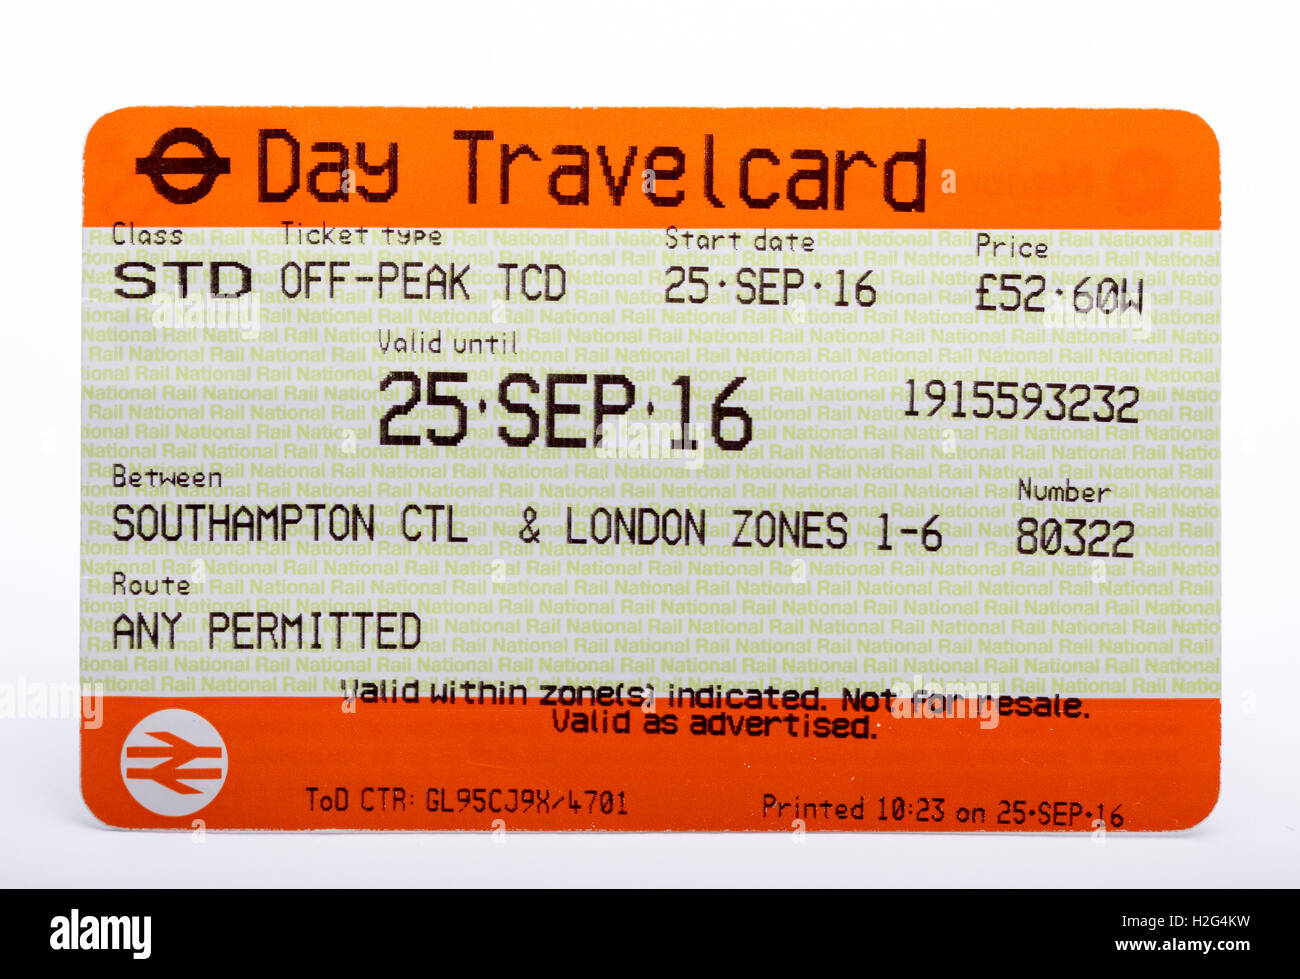 Ein Zugticket von National Rail Travel Tageskarte Stockbild